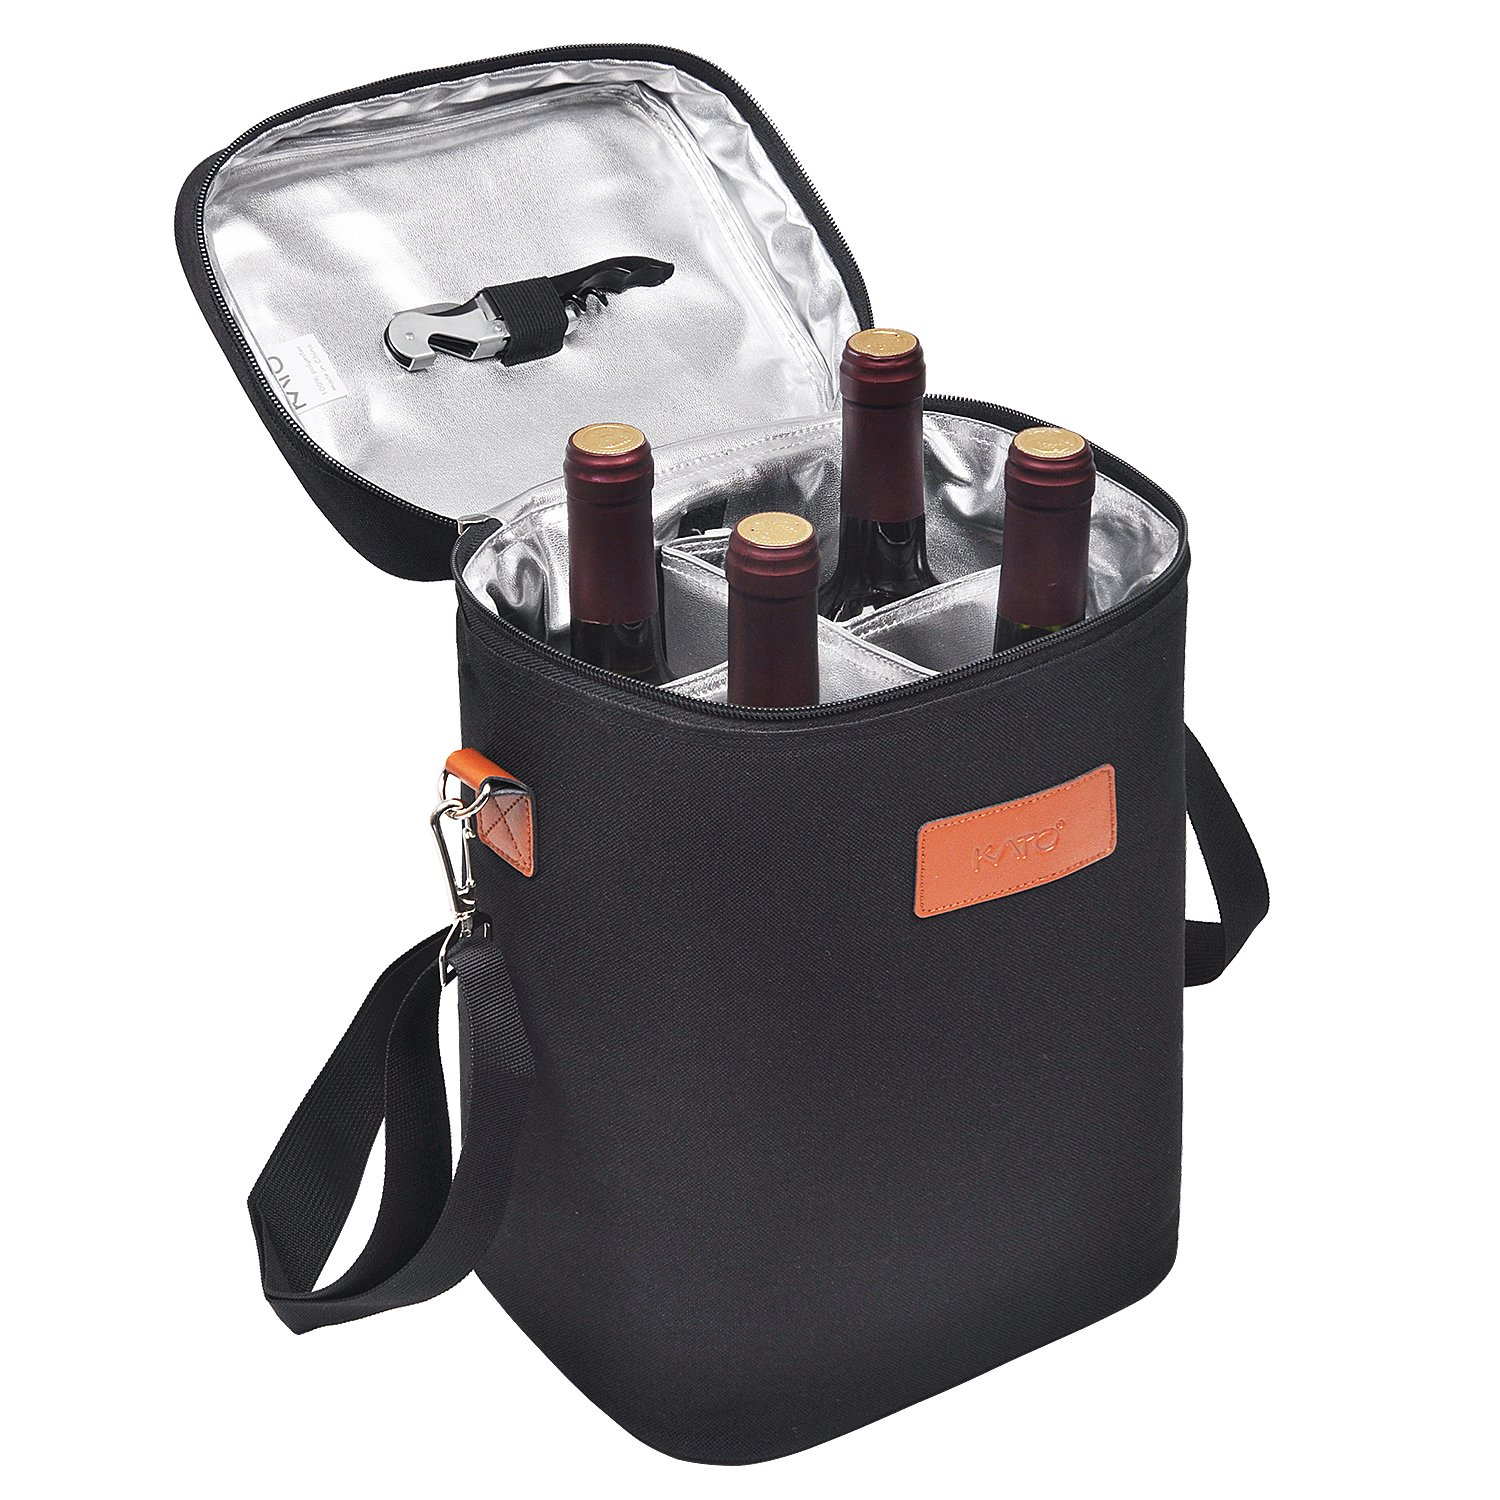 Kato Insulated Wine Carrier Bag - 4 Bottle Travel Padded Wine Carrying CoolerTote with Handle and Shoulder Strap, Great Wine Lover Gift, Black by Kato (Image #8)